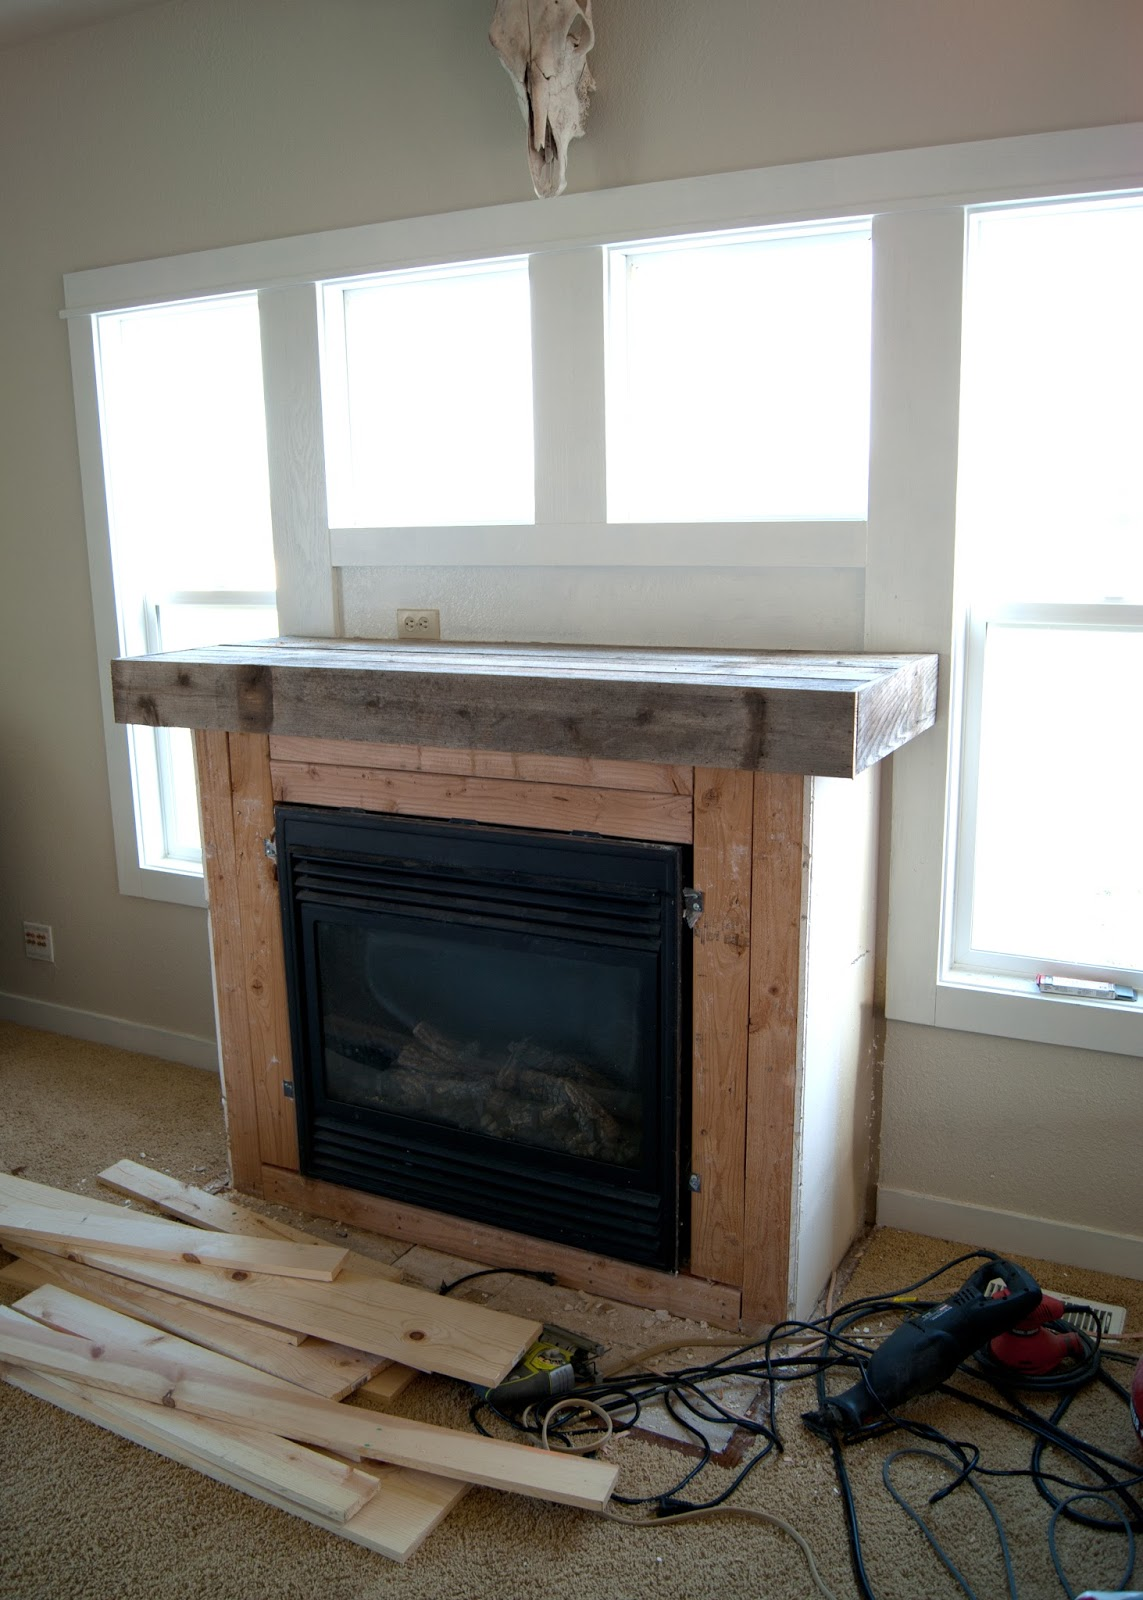 Fireplace Makeover   Reclaimed Wood MantelFireplace Makeover   Reclaimed Wood Mantel   Averie Lane  . Old Wood Fireplace Mantels. Home Design Ideas